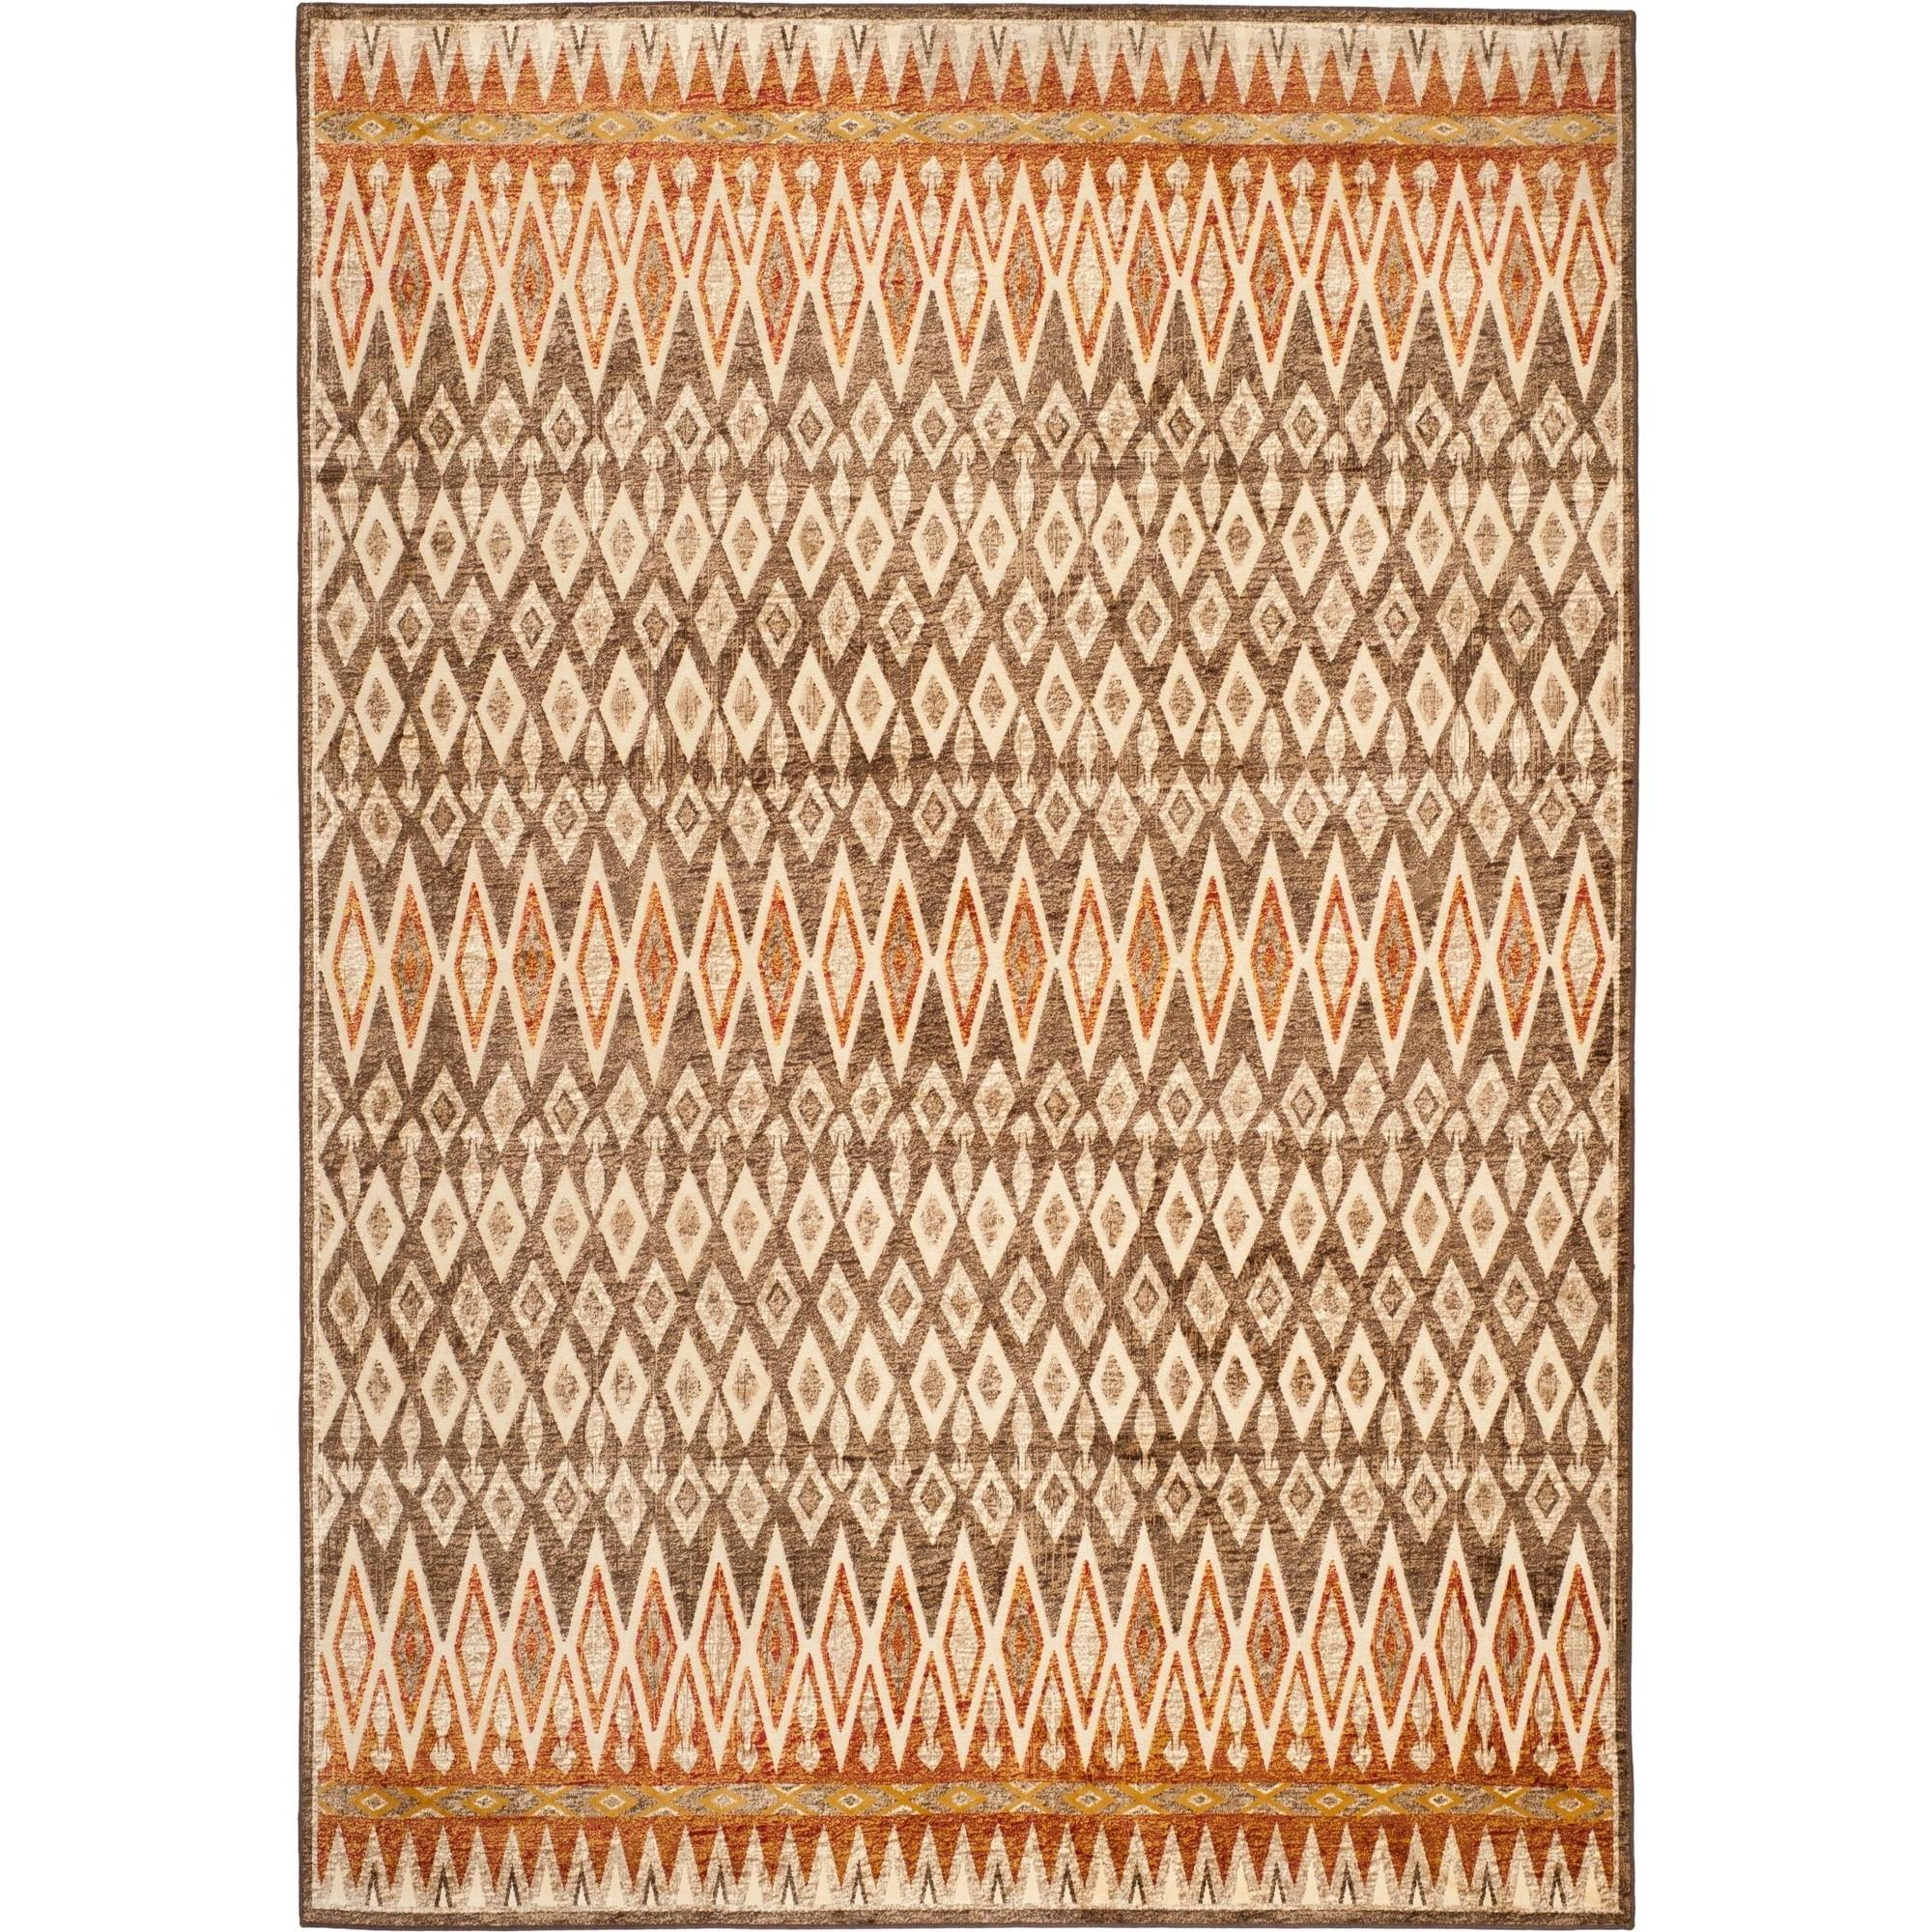 Safavieh Paradise Tatyanna Power Loomed Area Rug, Taupe/Cream